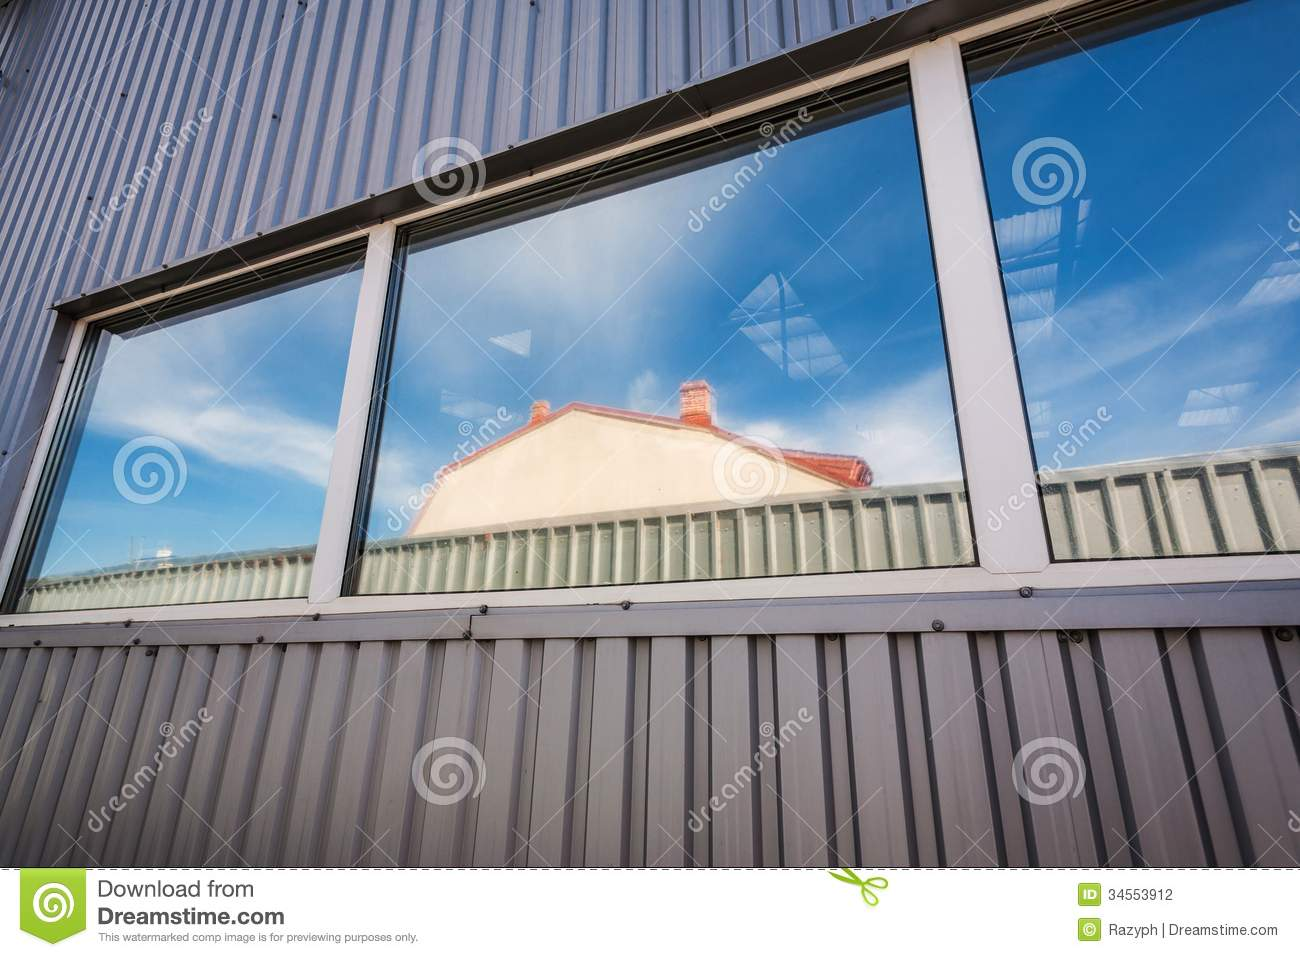 Fen tre industrielle de hall photographie stock image for Fenetre industrielle interieur